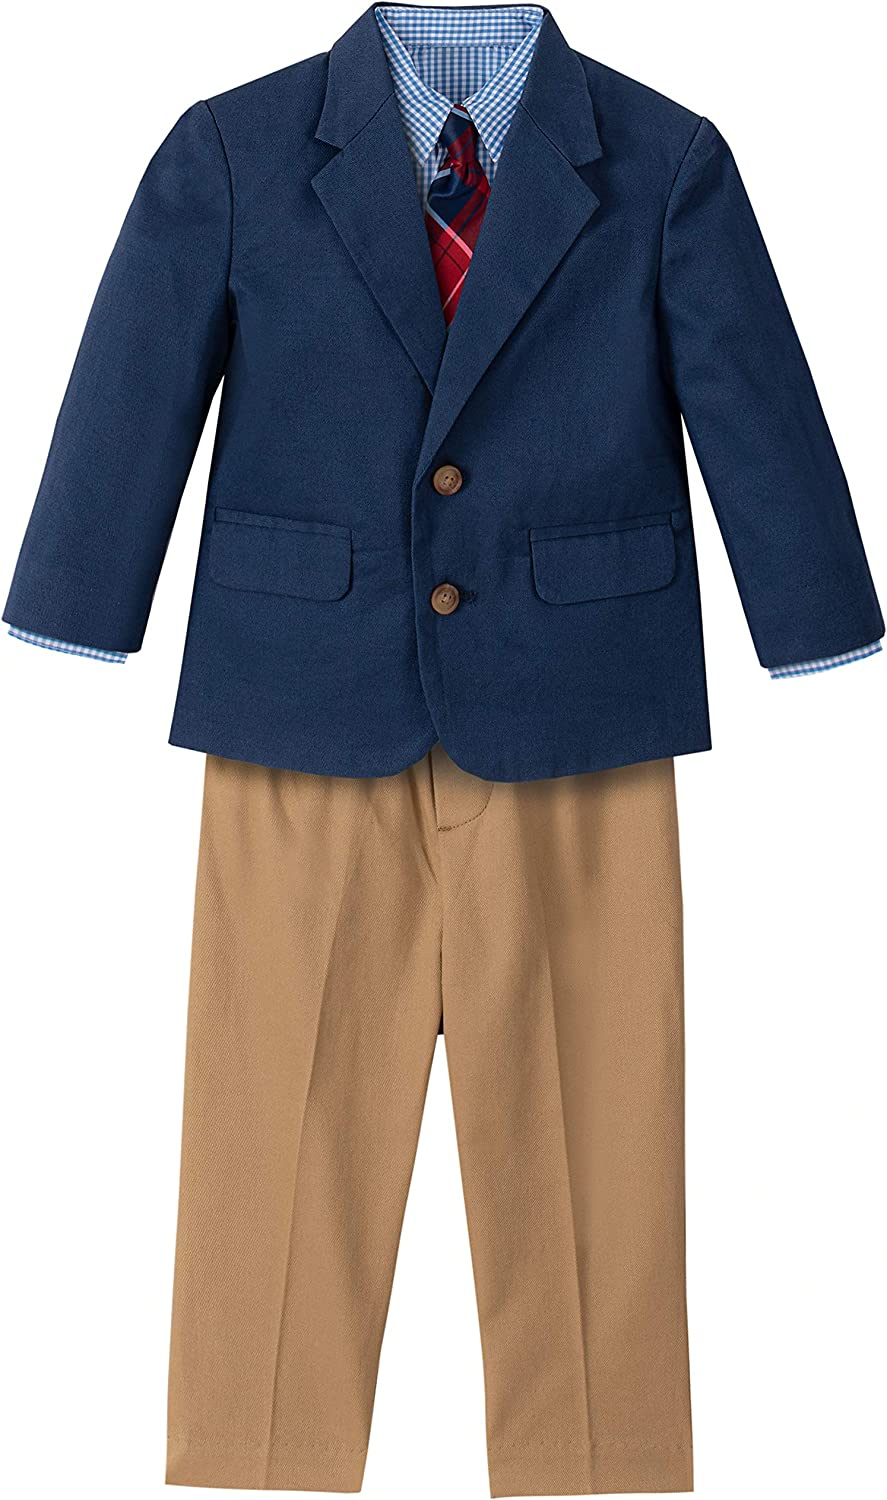 Nautica Baby Boys' 4-Piece Suit Set with Dress Shirt, Jacket, Pants, and Tie